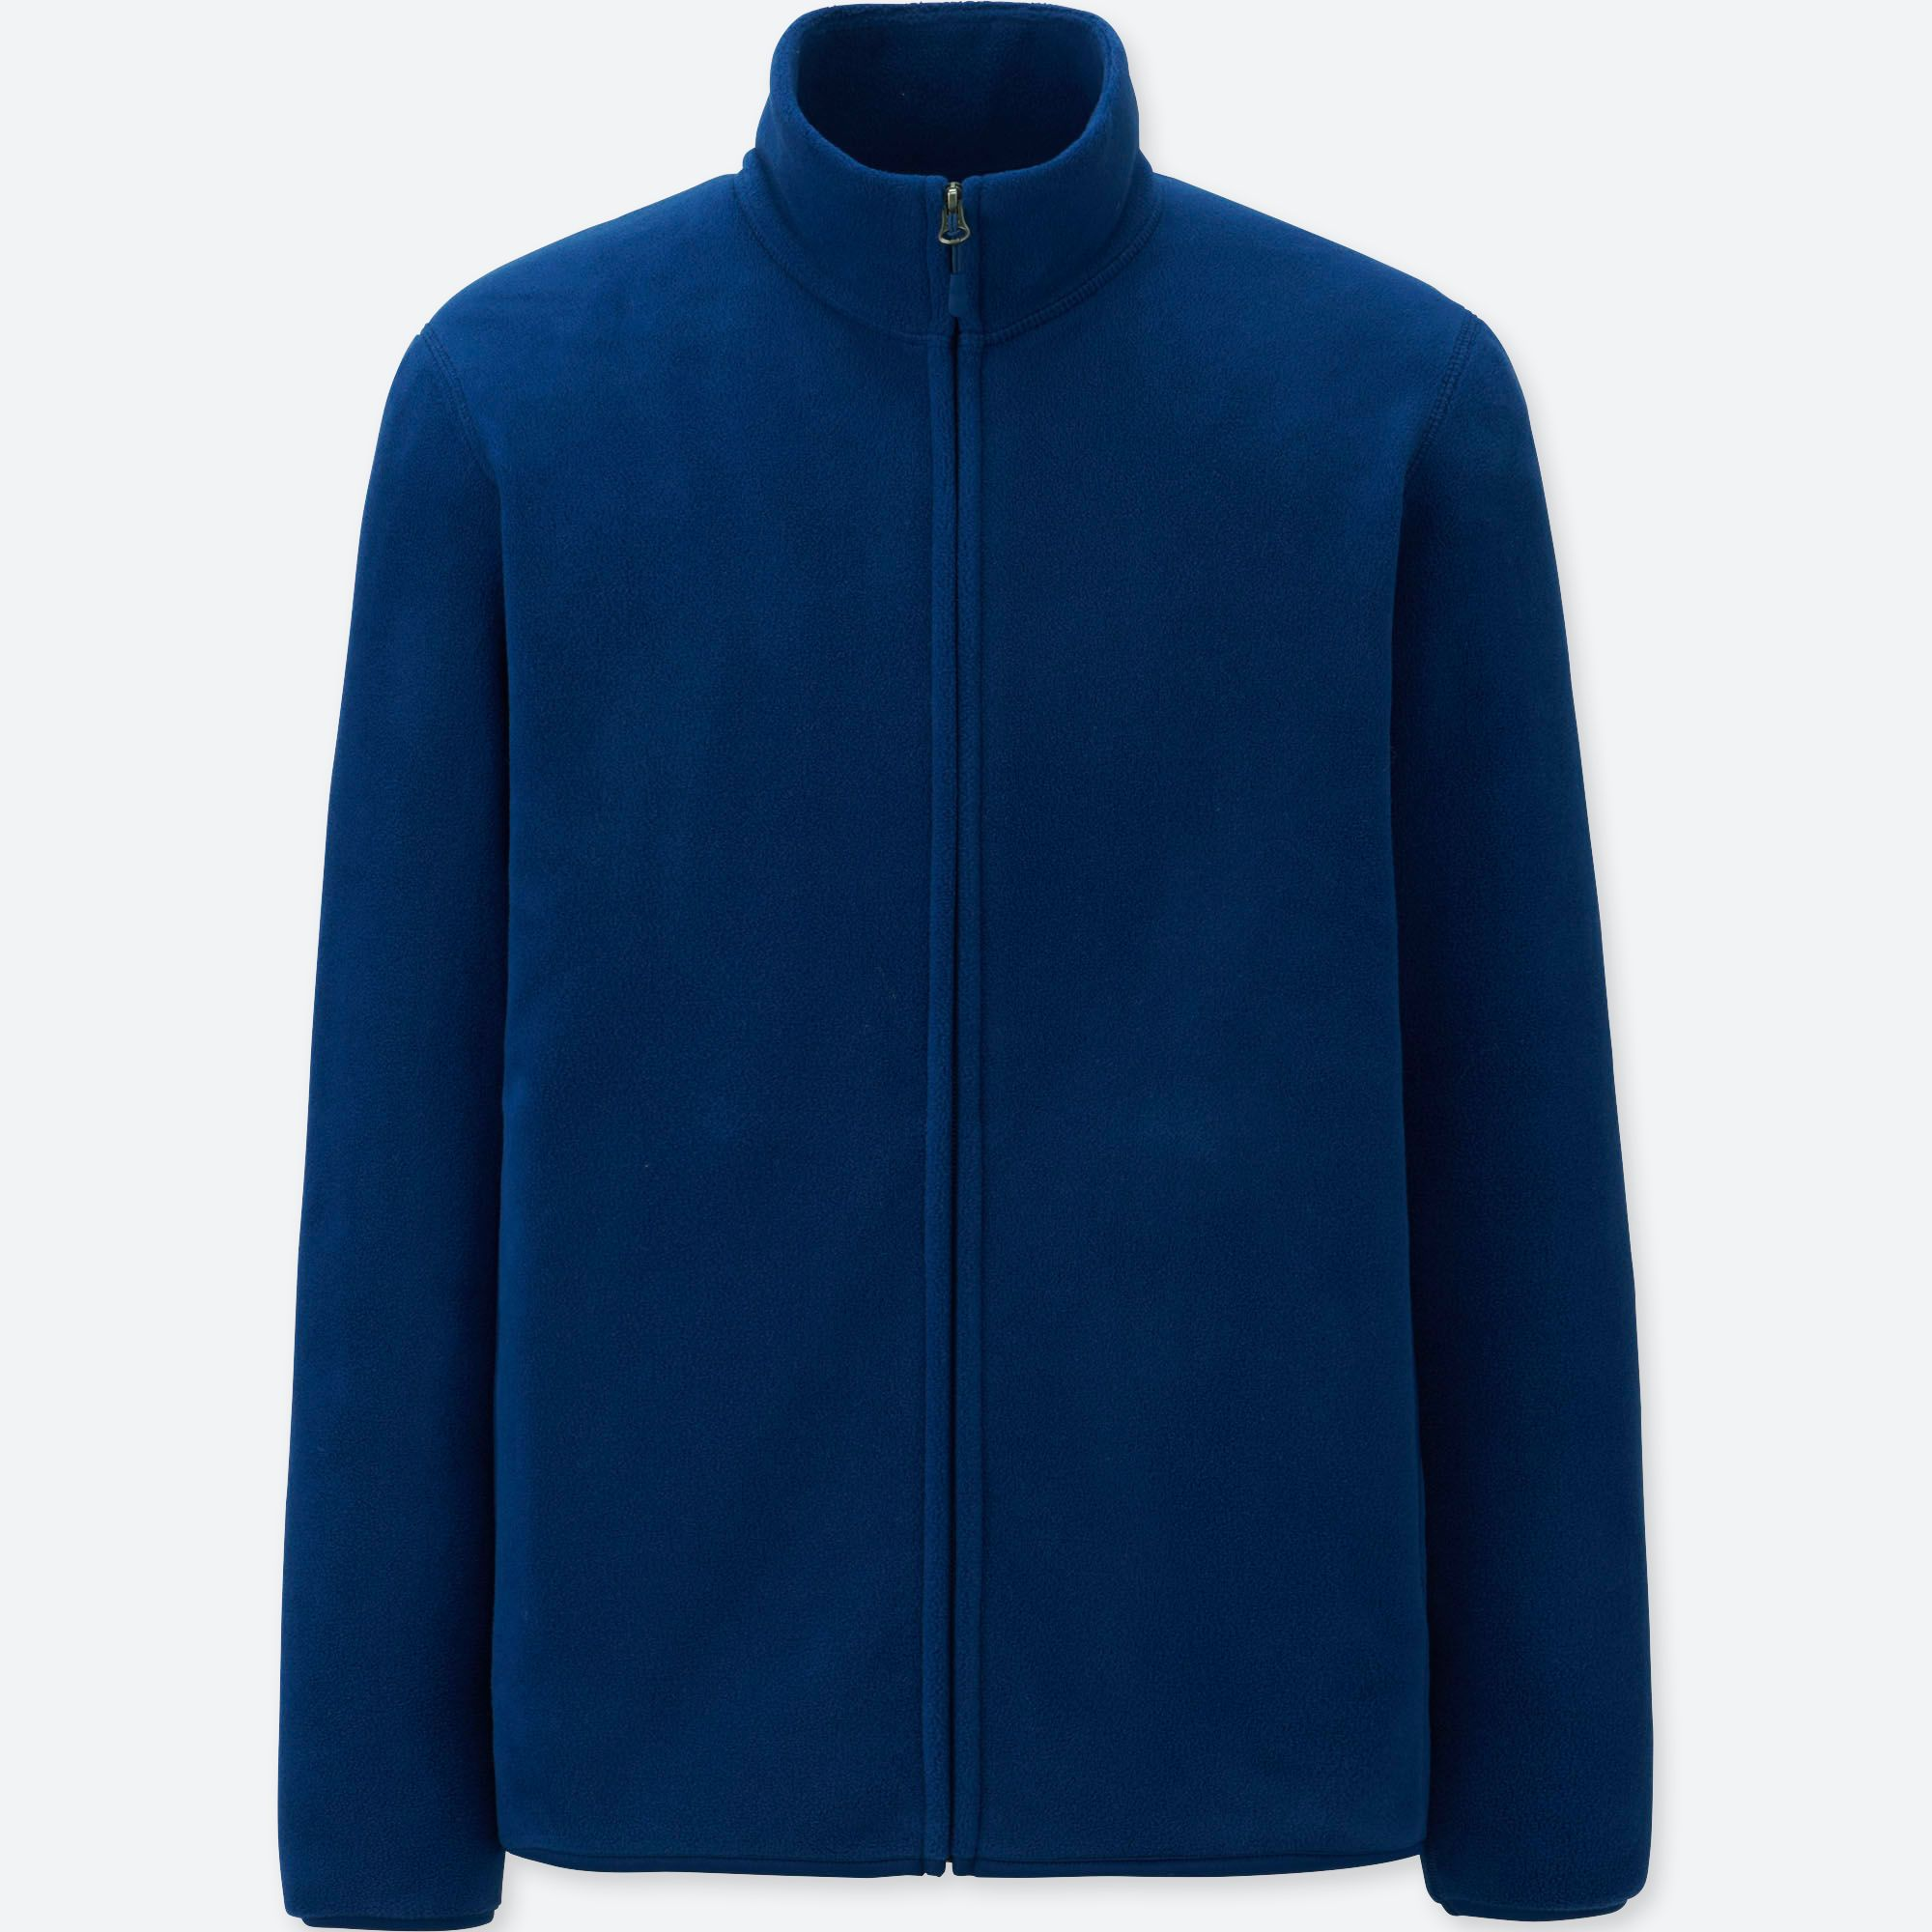 Uniqlo Men Fleece Long-Sleeve Full-Zip Jacket